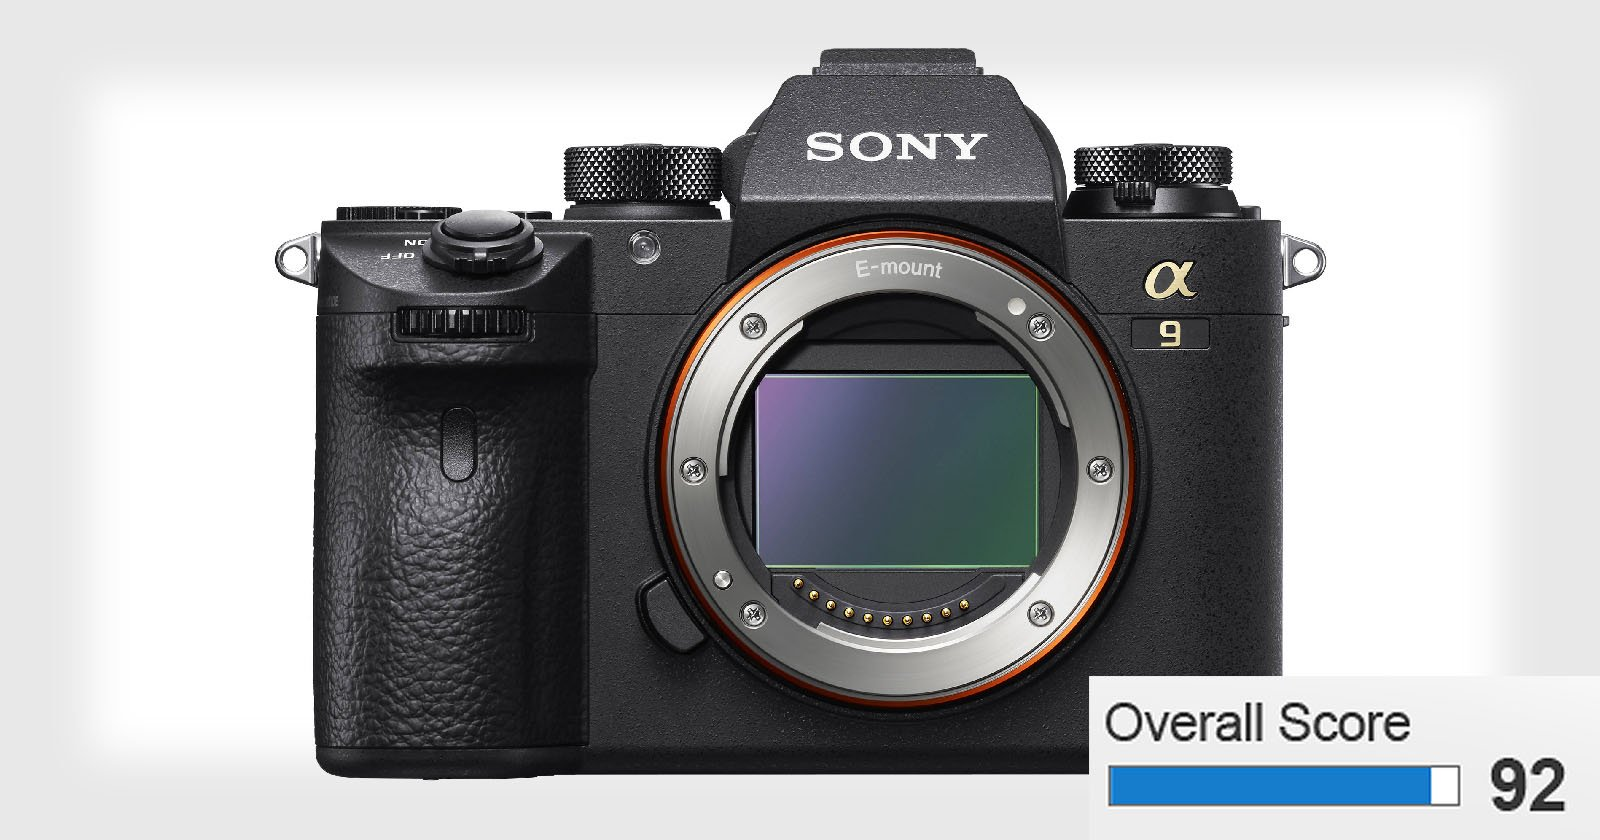 Sony a9 Sensor One of the Best Ever Tested, DxOMark Finds